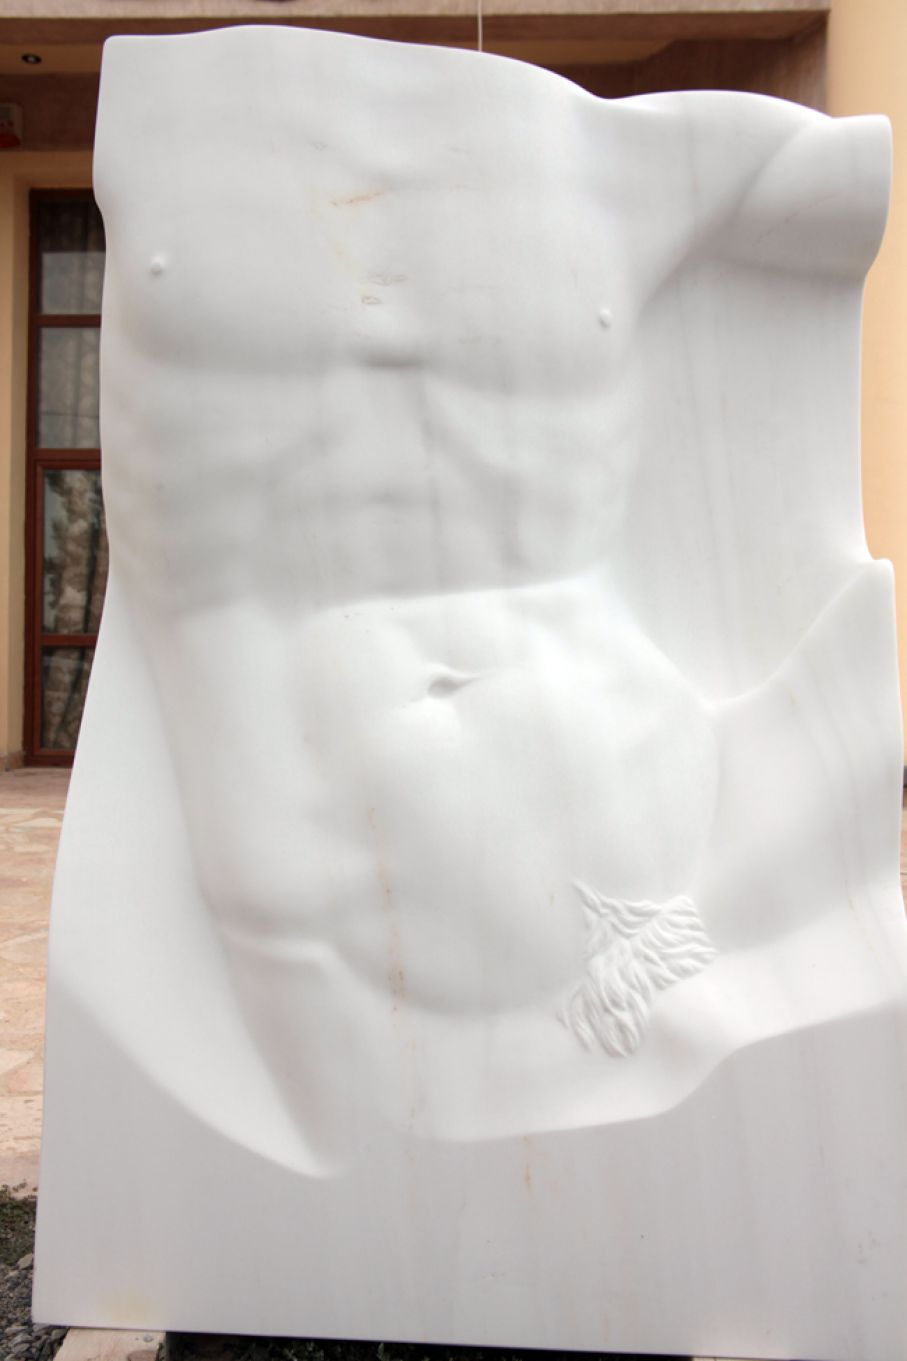 "Original marble sculpture of Kamen Tanev, completed in 2013 within Myrό Antiques House premises, in Souroti, Thessaloniki, GREECE, as part of the Greek Marble Initiative, bearing the title ""Apollo"". Dimensions: 150 X 100 X 41 cm (without a base)."